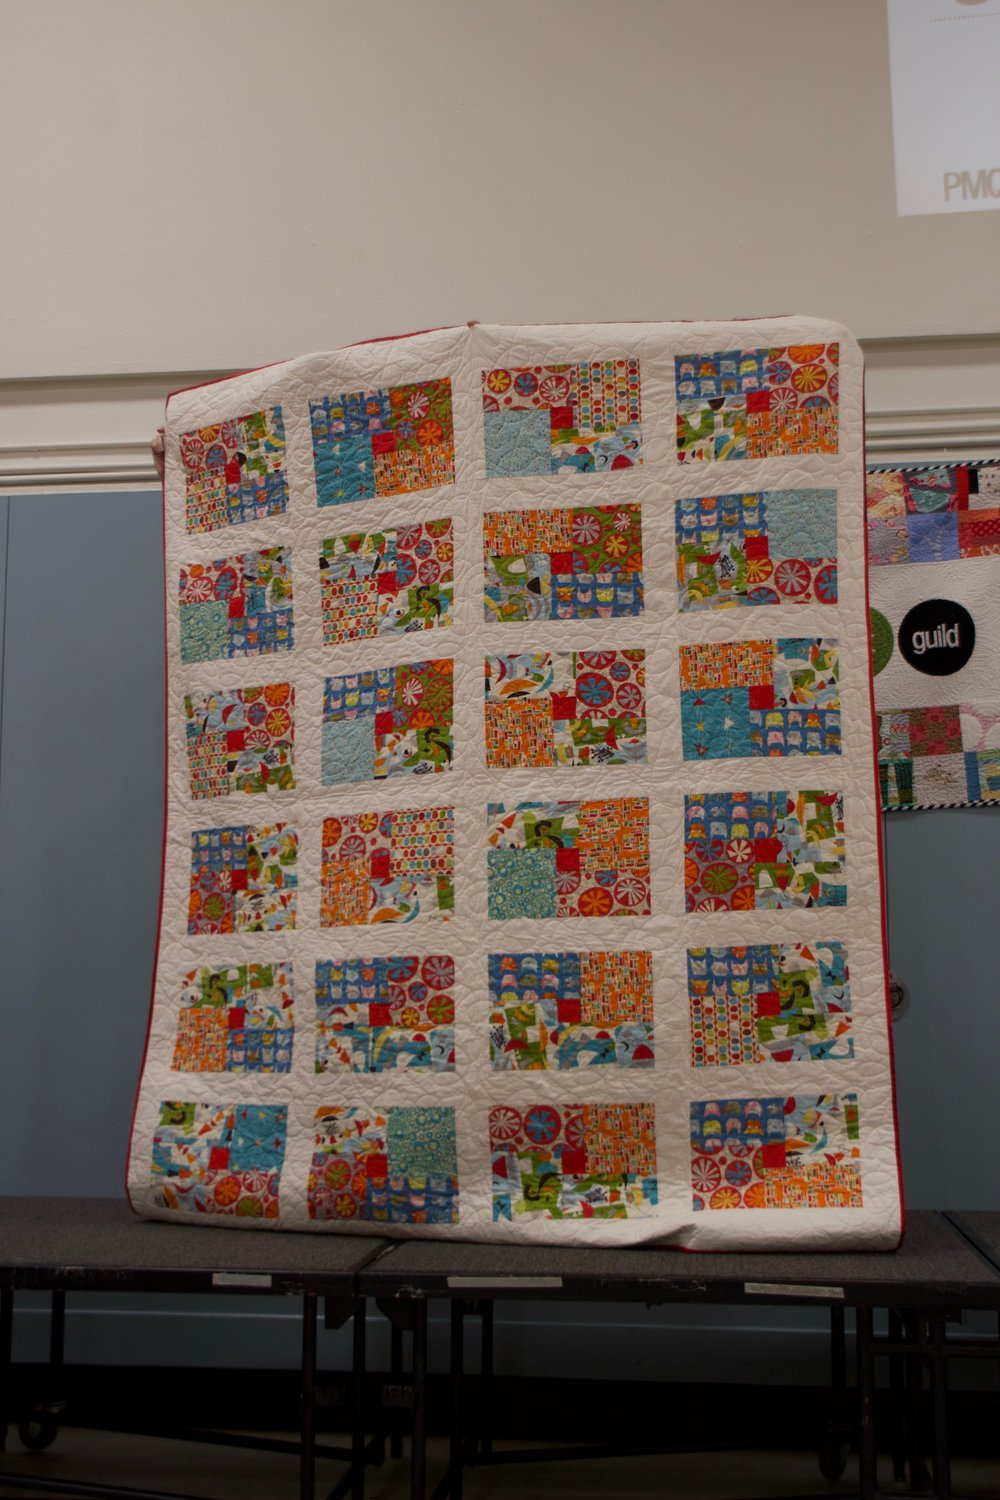 PMQG Charity Quilt destined for Camp Erin